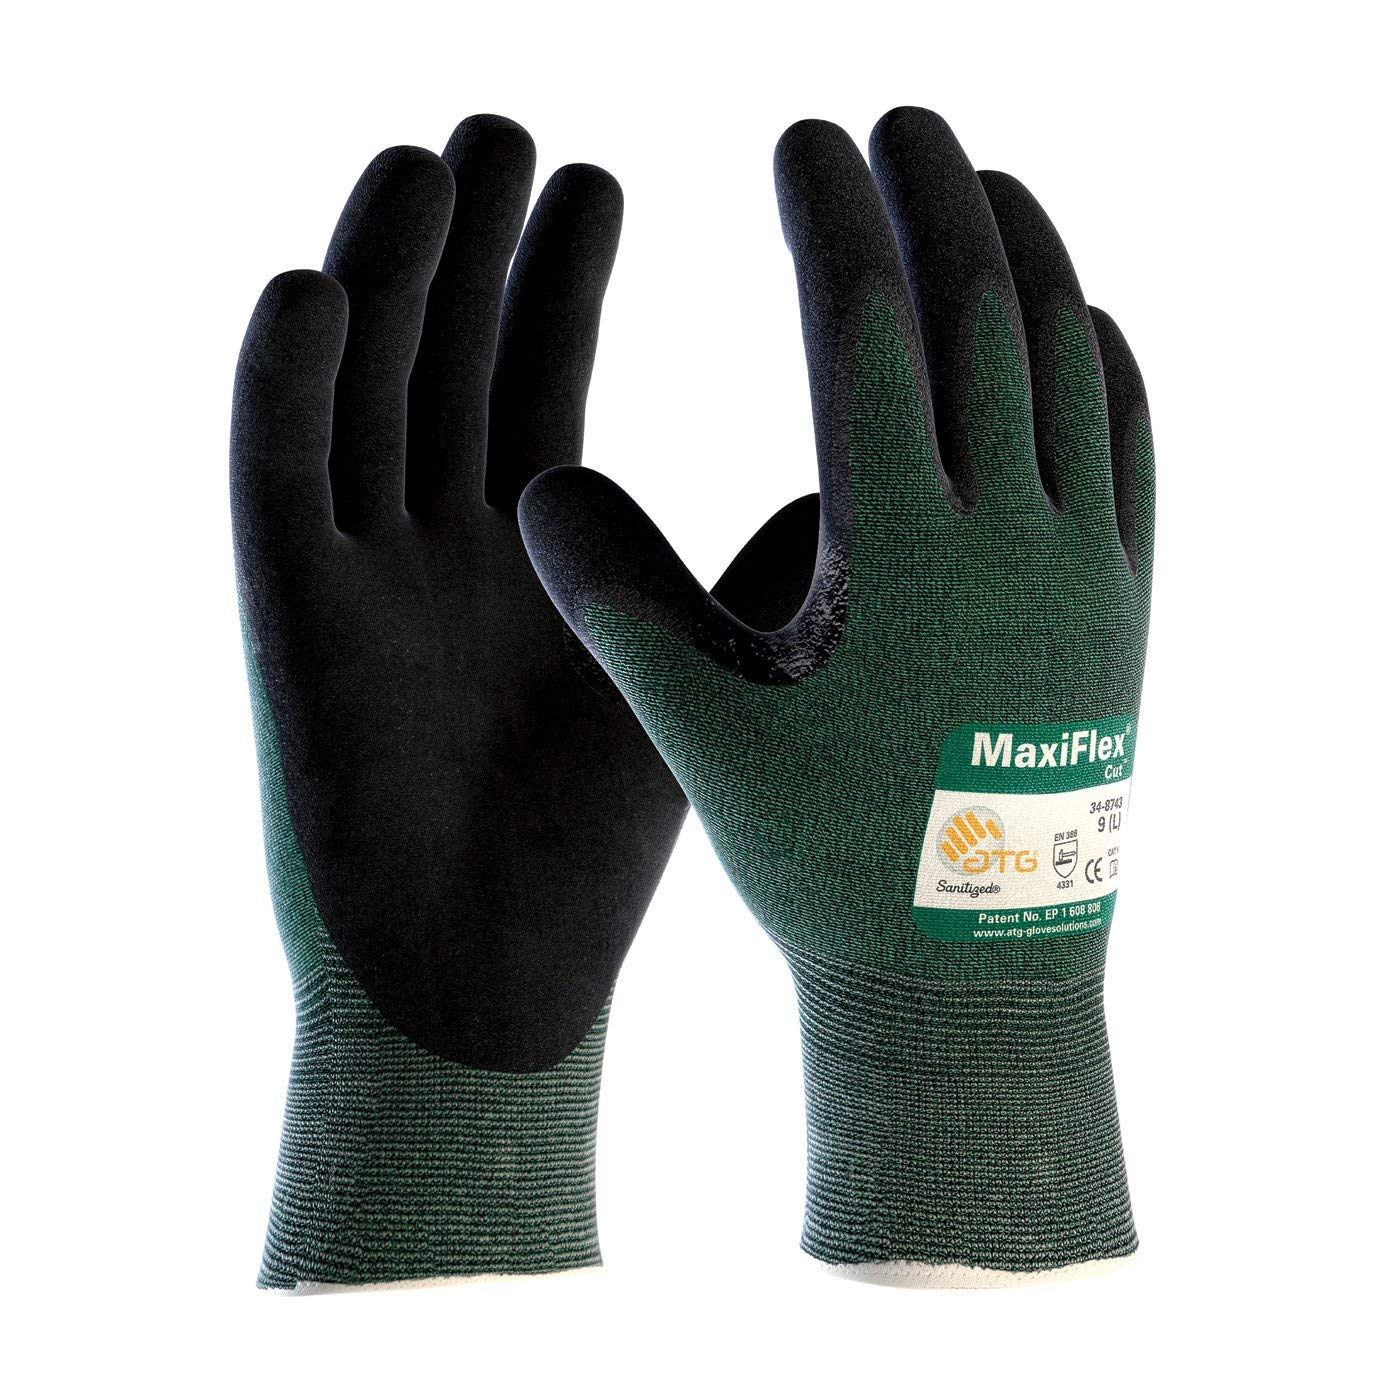 PIP ATG 34-8743/L Large MaxiFlex Cut, Green Engineered Yarn, Black Gloves, 12-Pack